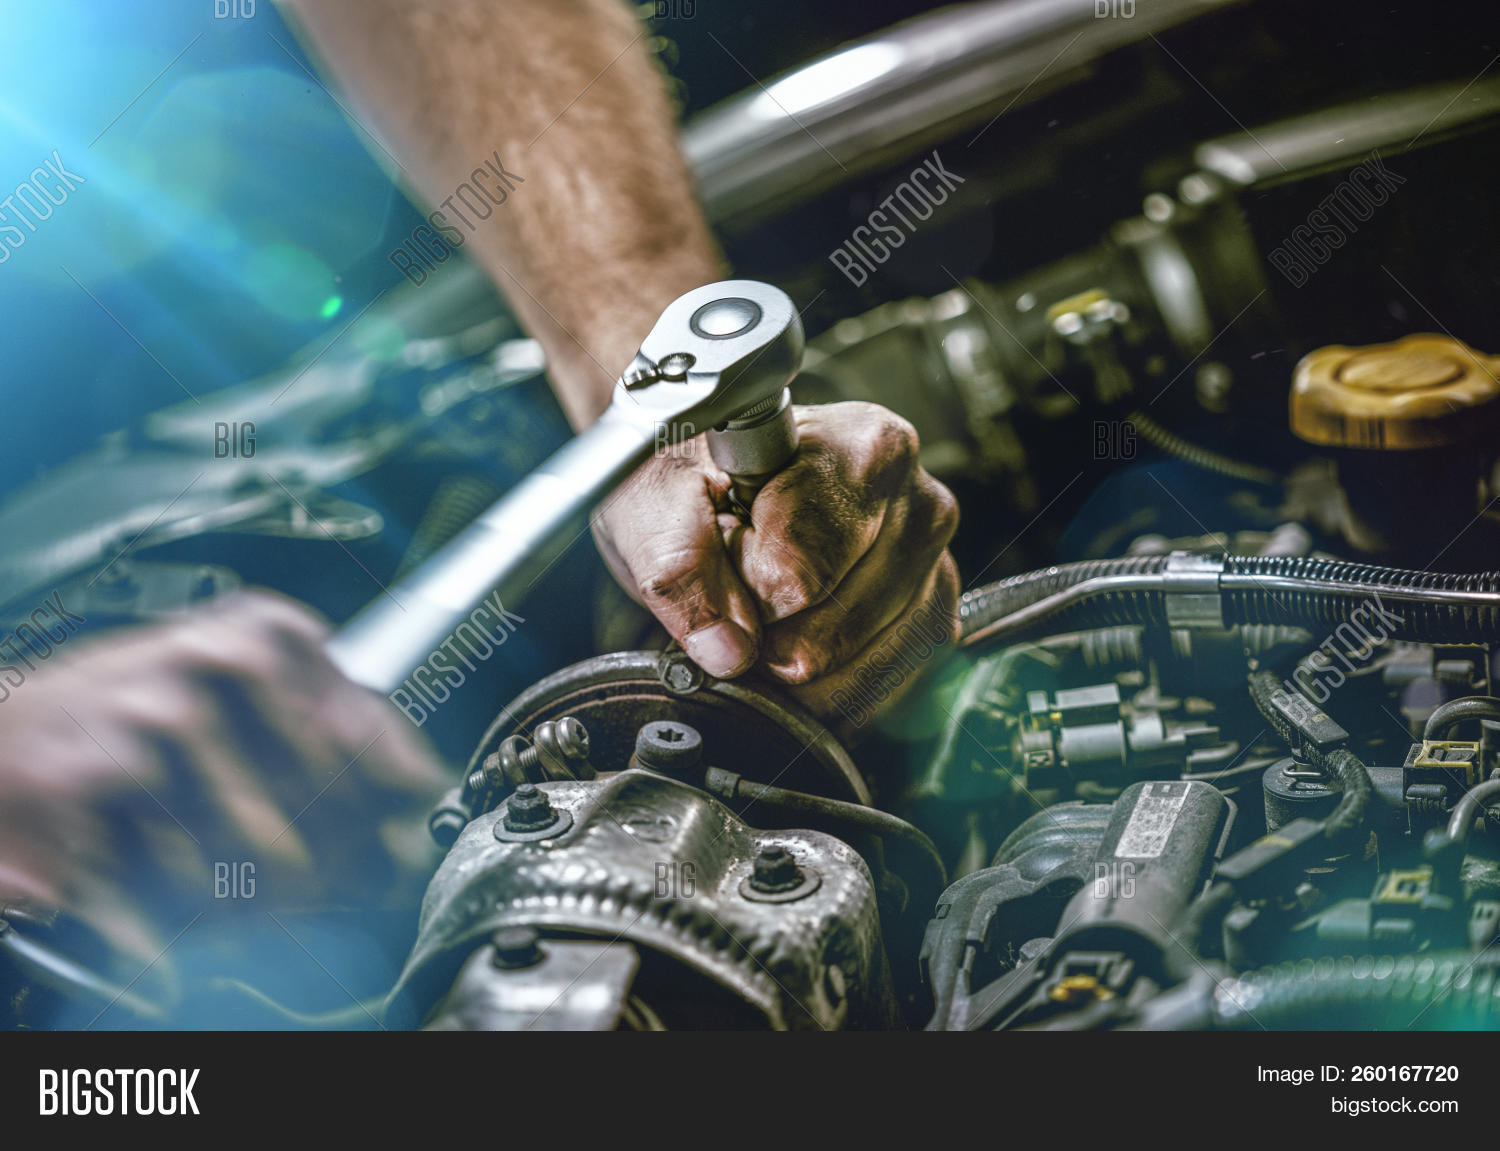 arm,authentic,auto,automobile,automotive,car,checking,copy,dirt,dirty,diy,engine,equipment,fuel,garage,grease,hand,industry,inspection,job,maintain,maintenance,mechanic,men,oil,part,profession,repair,repairing,service,shop,space,station,technican,tool,transmission,vehicle,workshop,wrench